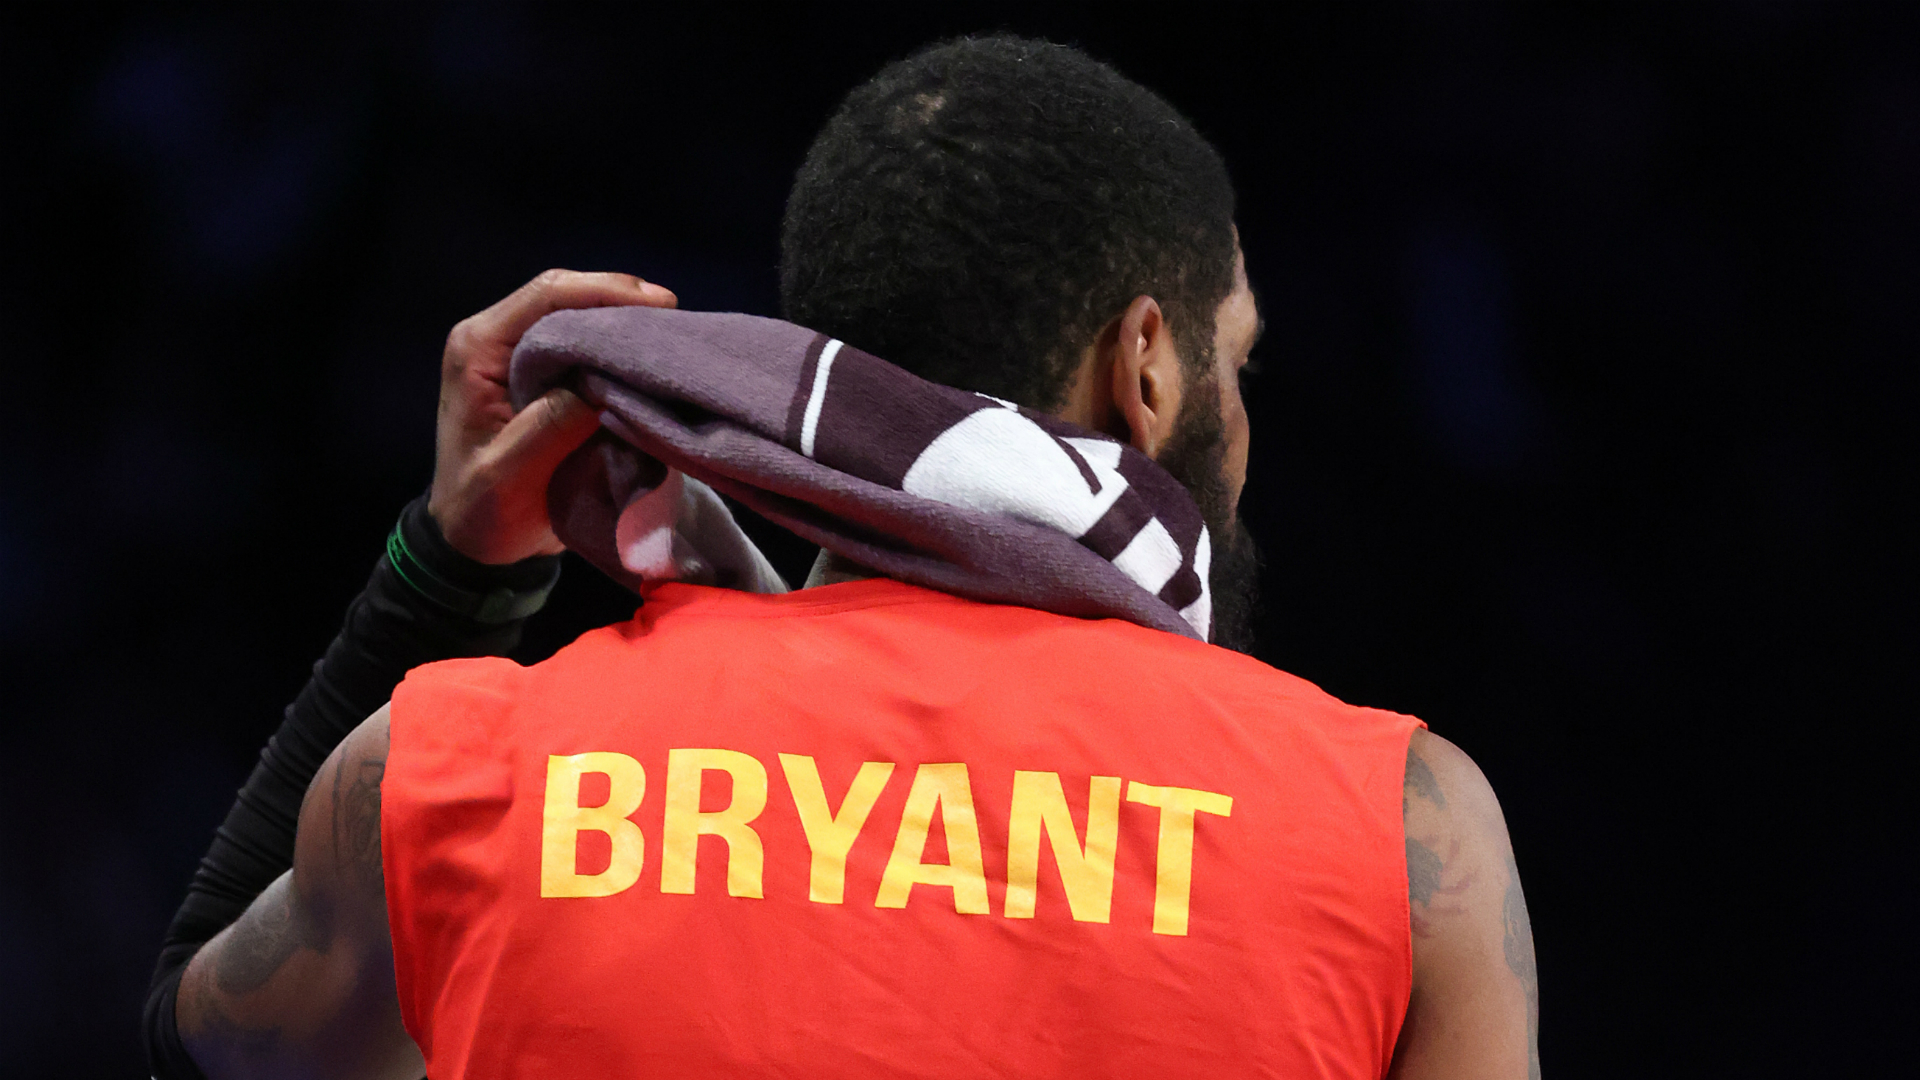 Kobe Bryant dead: Irving vows to 'continue to carry the torch' in emotional tribute